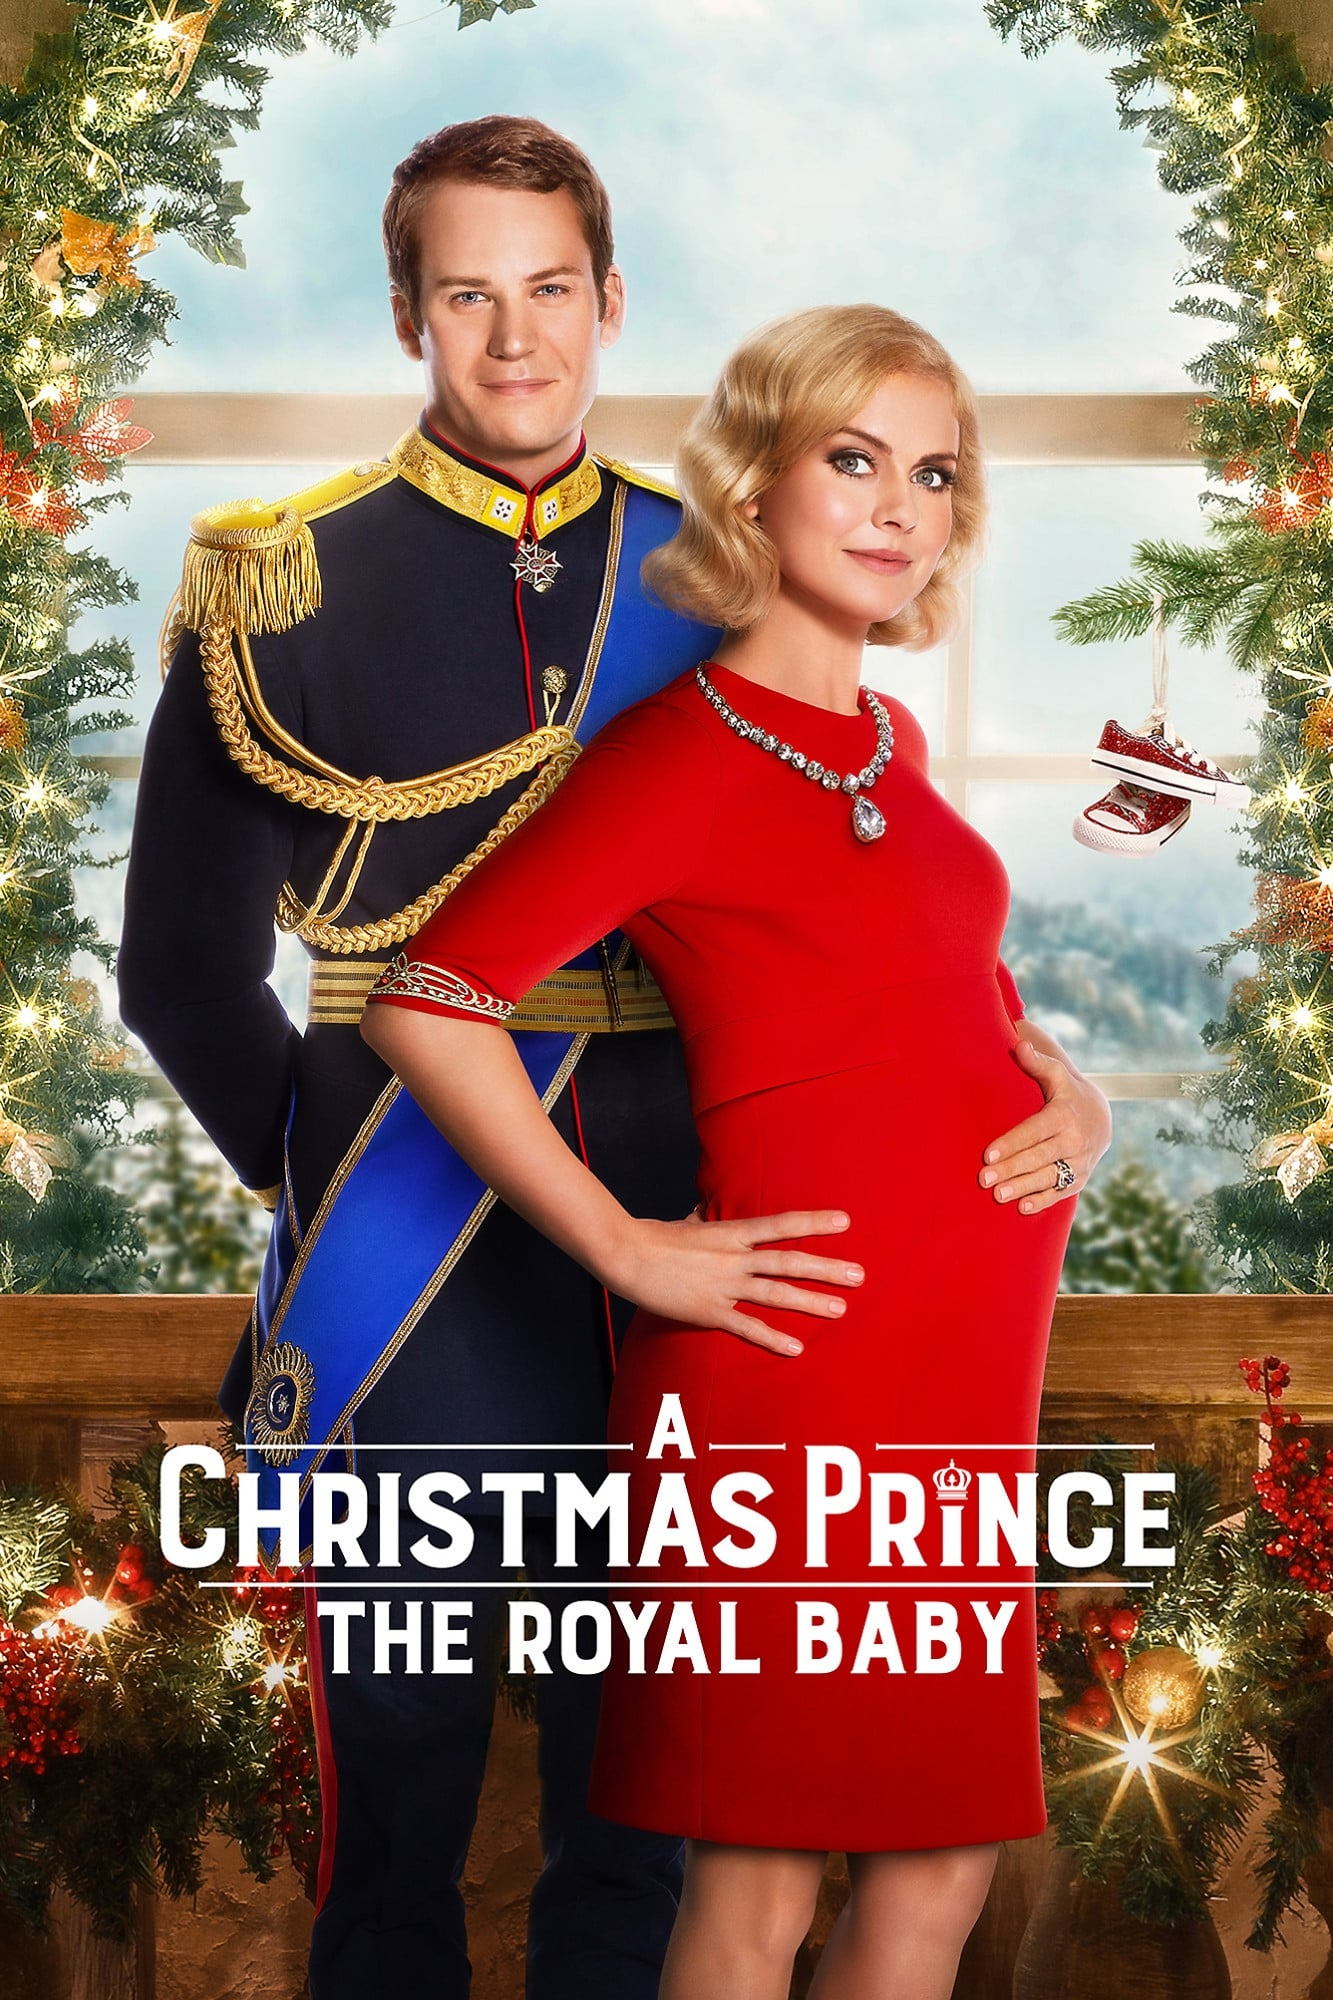 A Christmas Prince: The Royal Baby